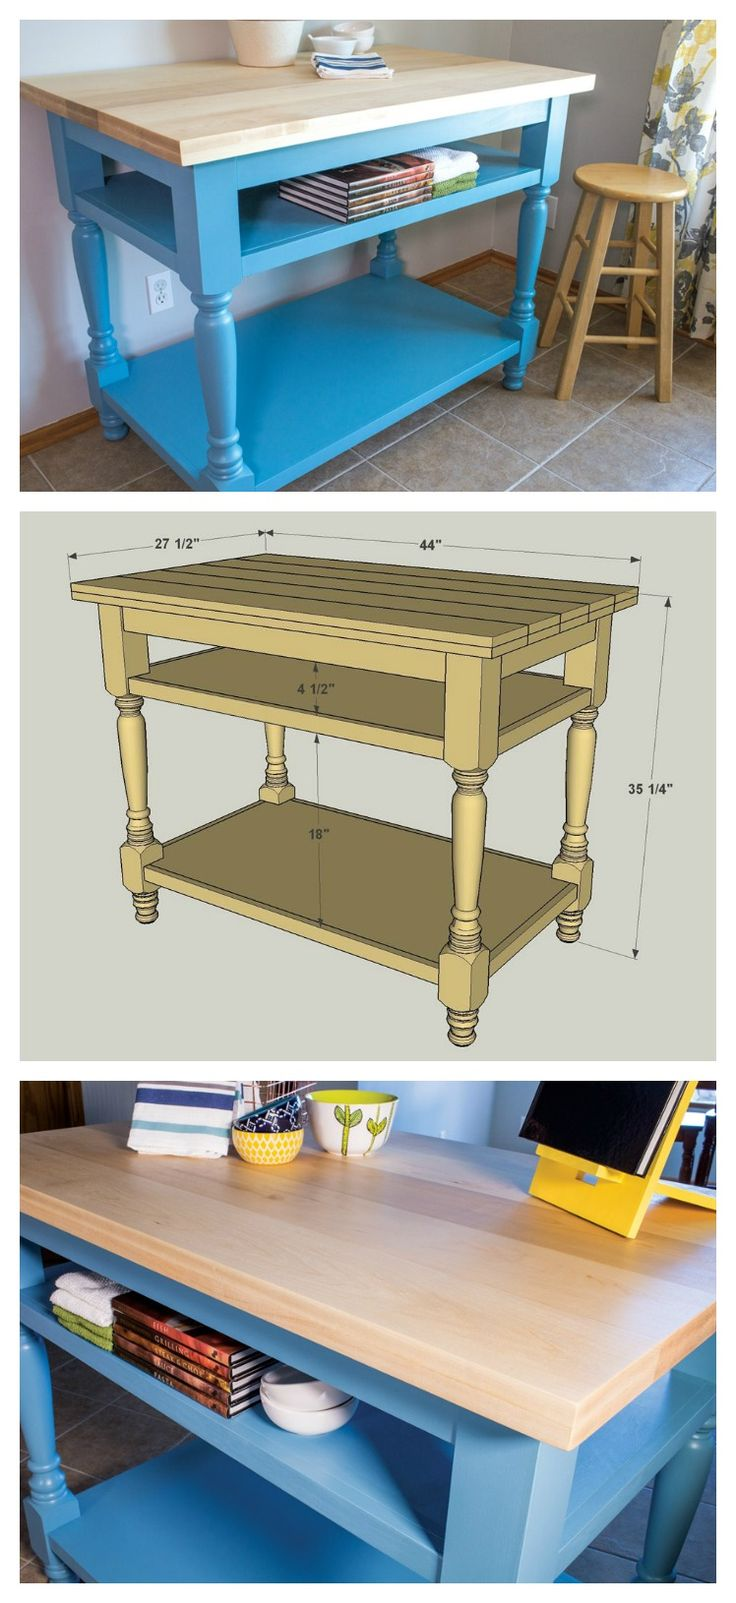 How To: Build a Faux Butcher Block Kitchen Island :: Free Plans at buildsomething.com